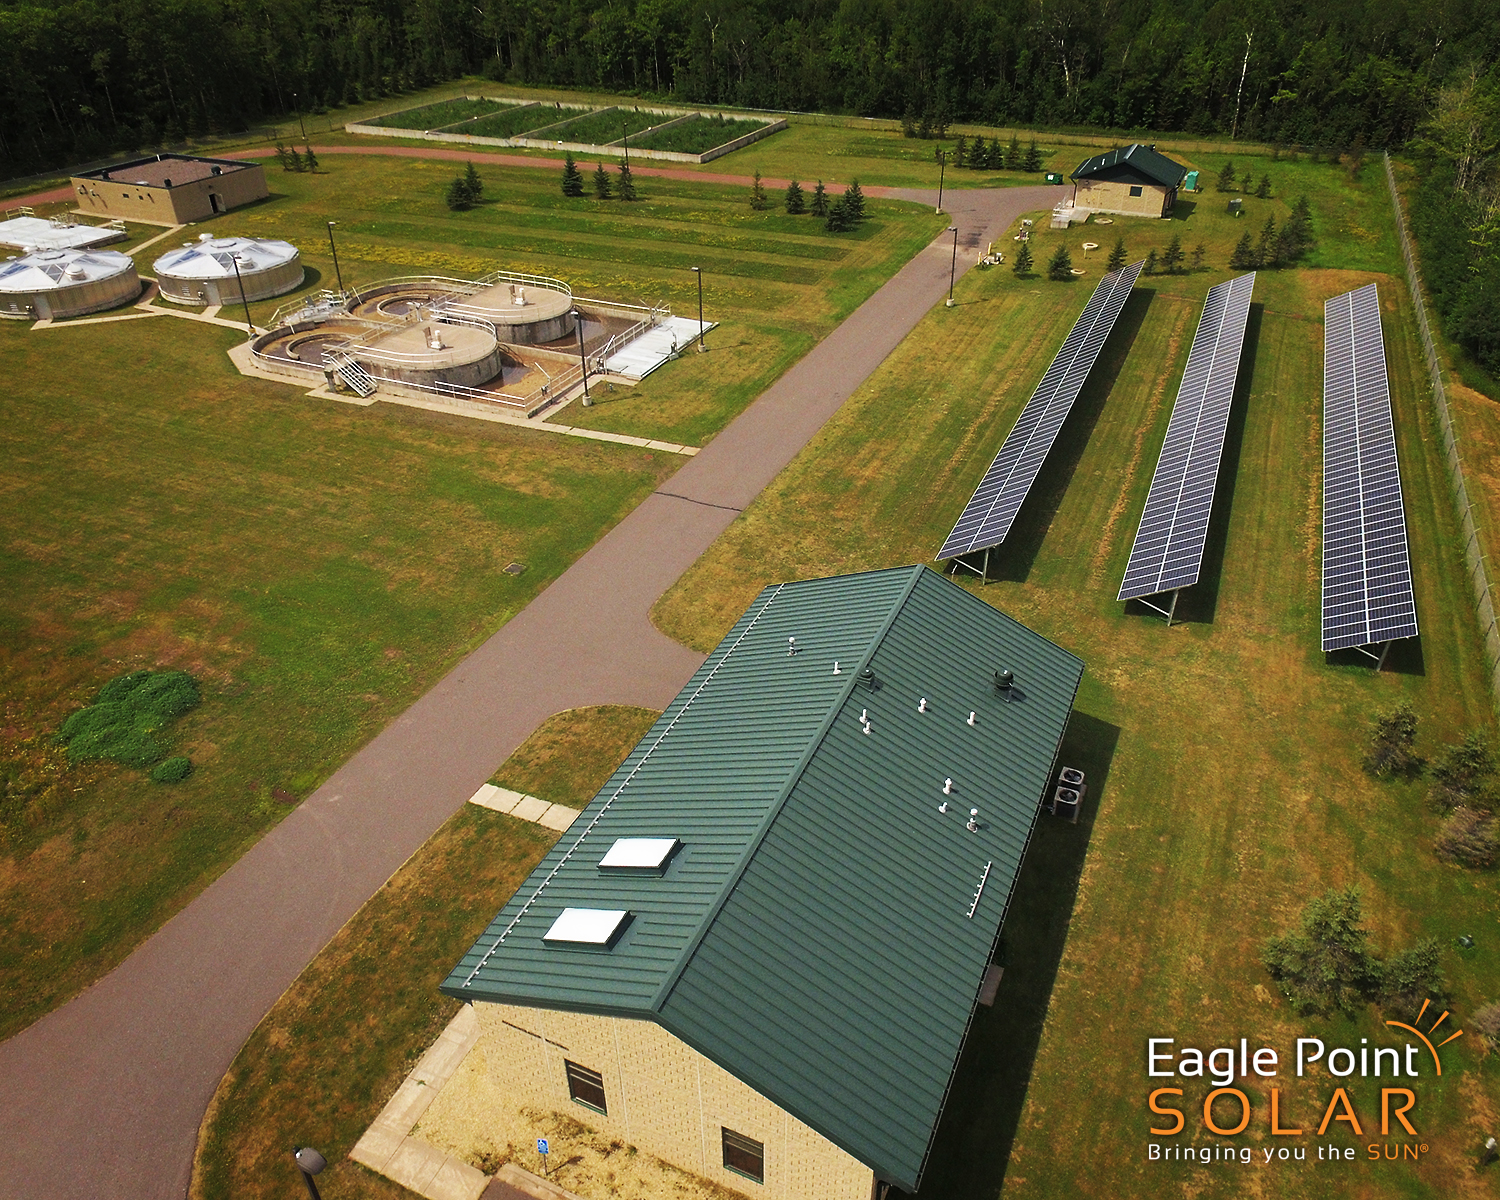 GREATER BAYFIELD WASTE WATER TREATMENT PLANT PHOTO